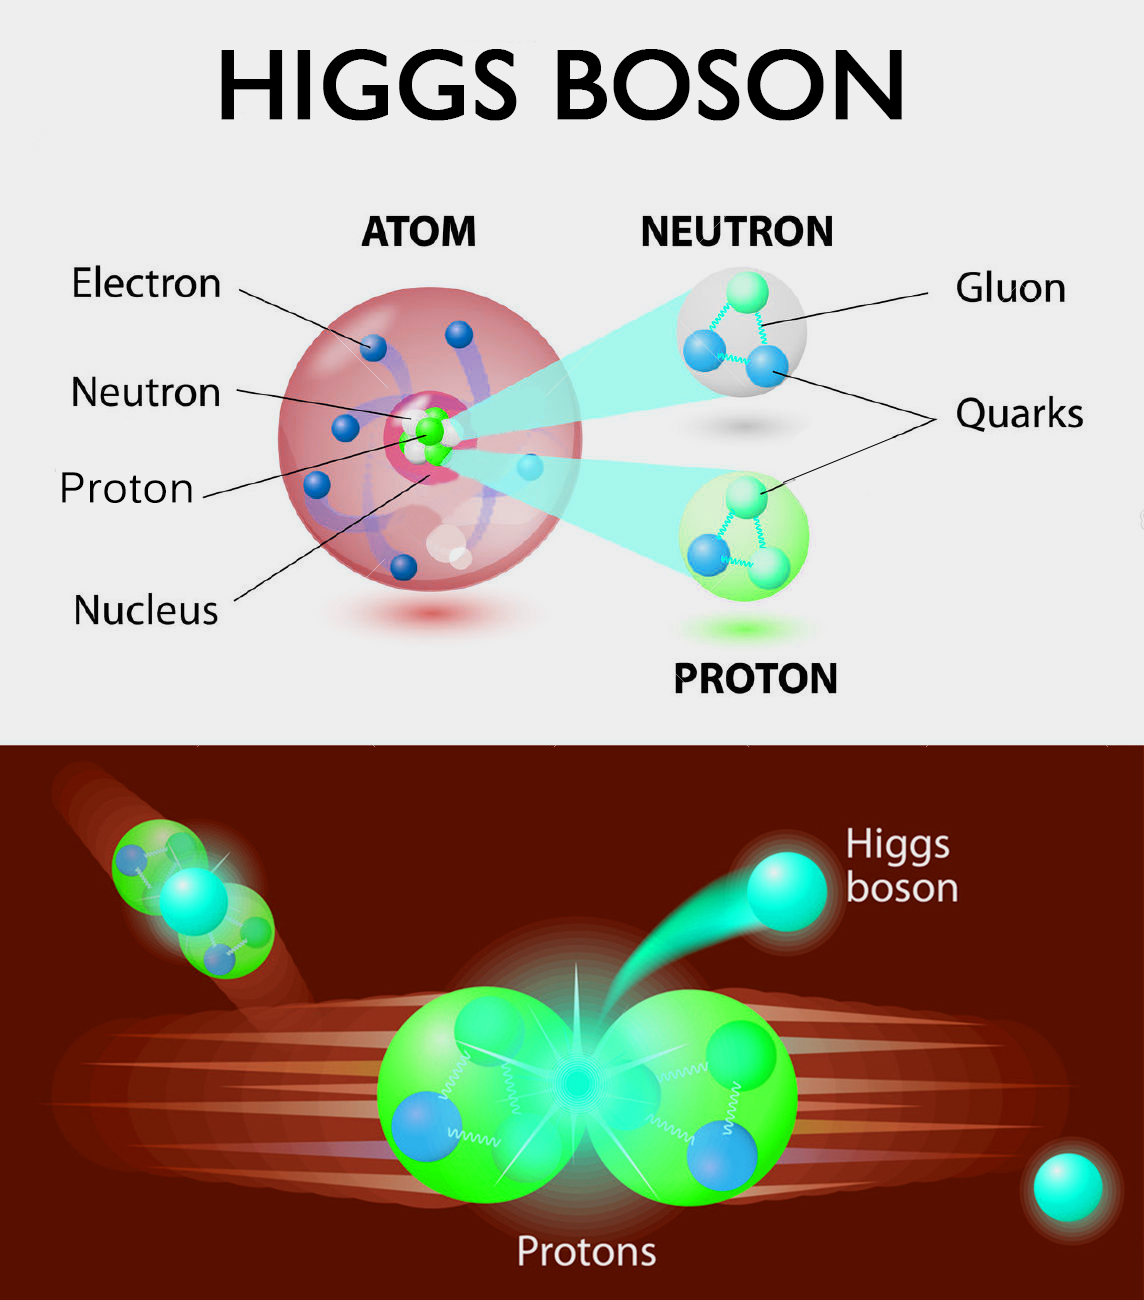 the higgs boson particle essay Introduction to the higgs boson papers john a gowan i do agree that the higgs is responsible for the rest mass of a particle (e = mcc), in that the higgs.